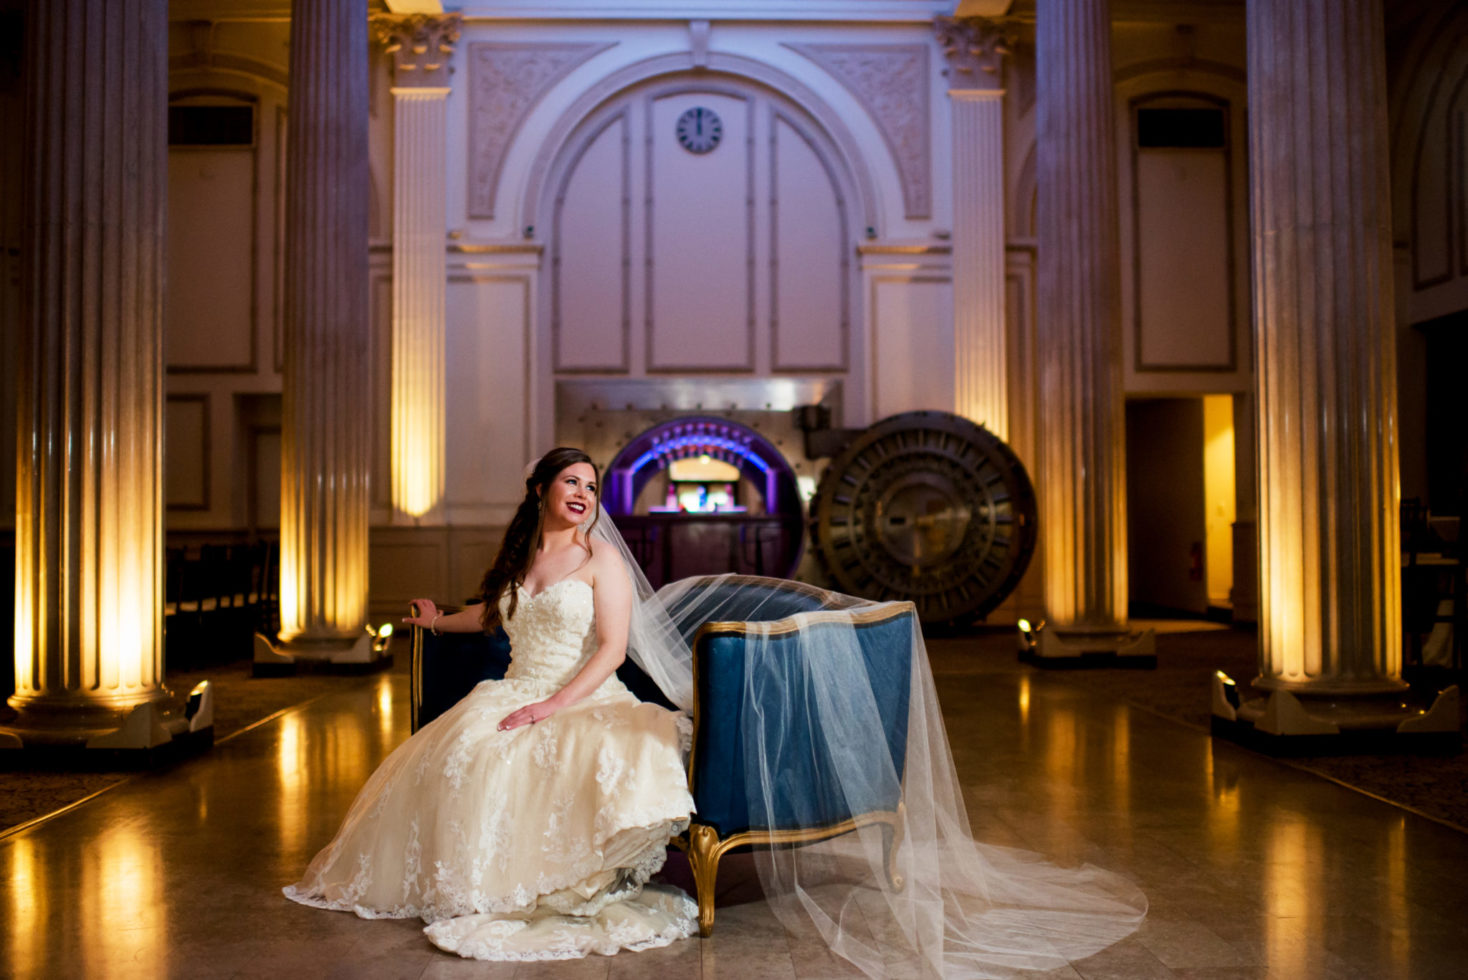 Cleveland Wedding Photography Historic Wedding Venue Photo